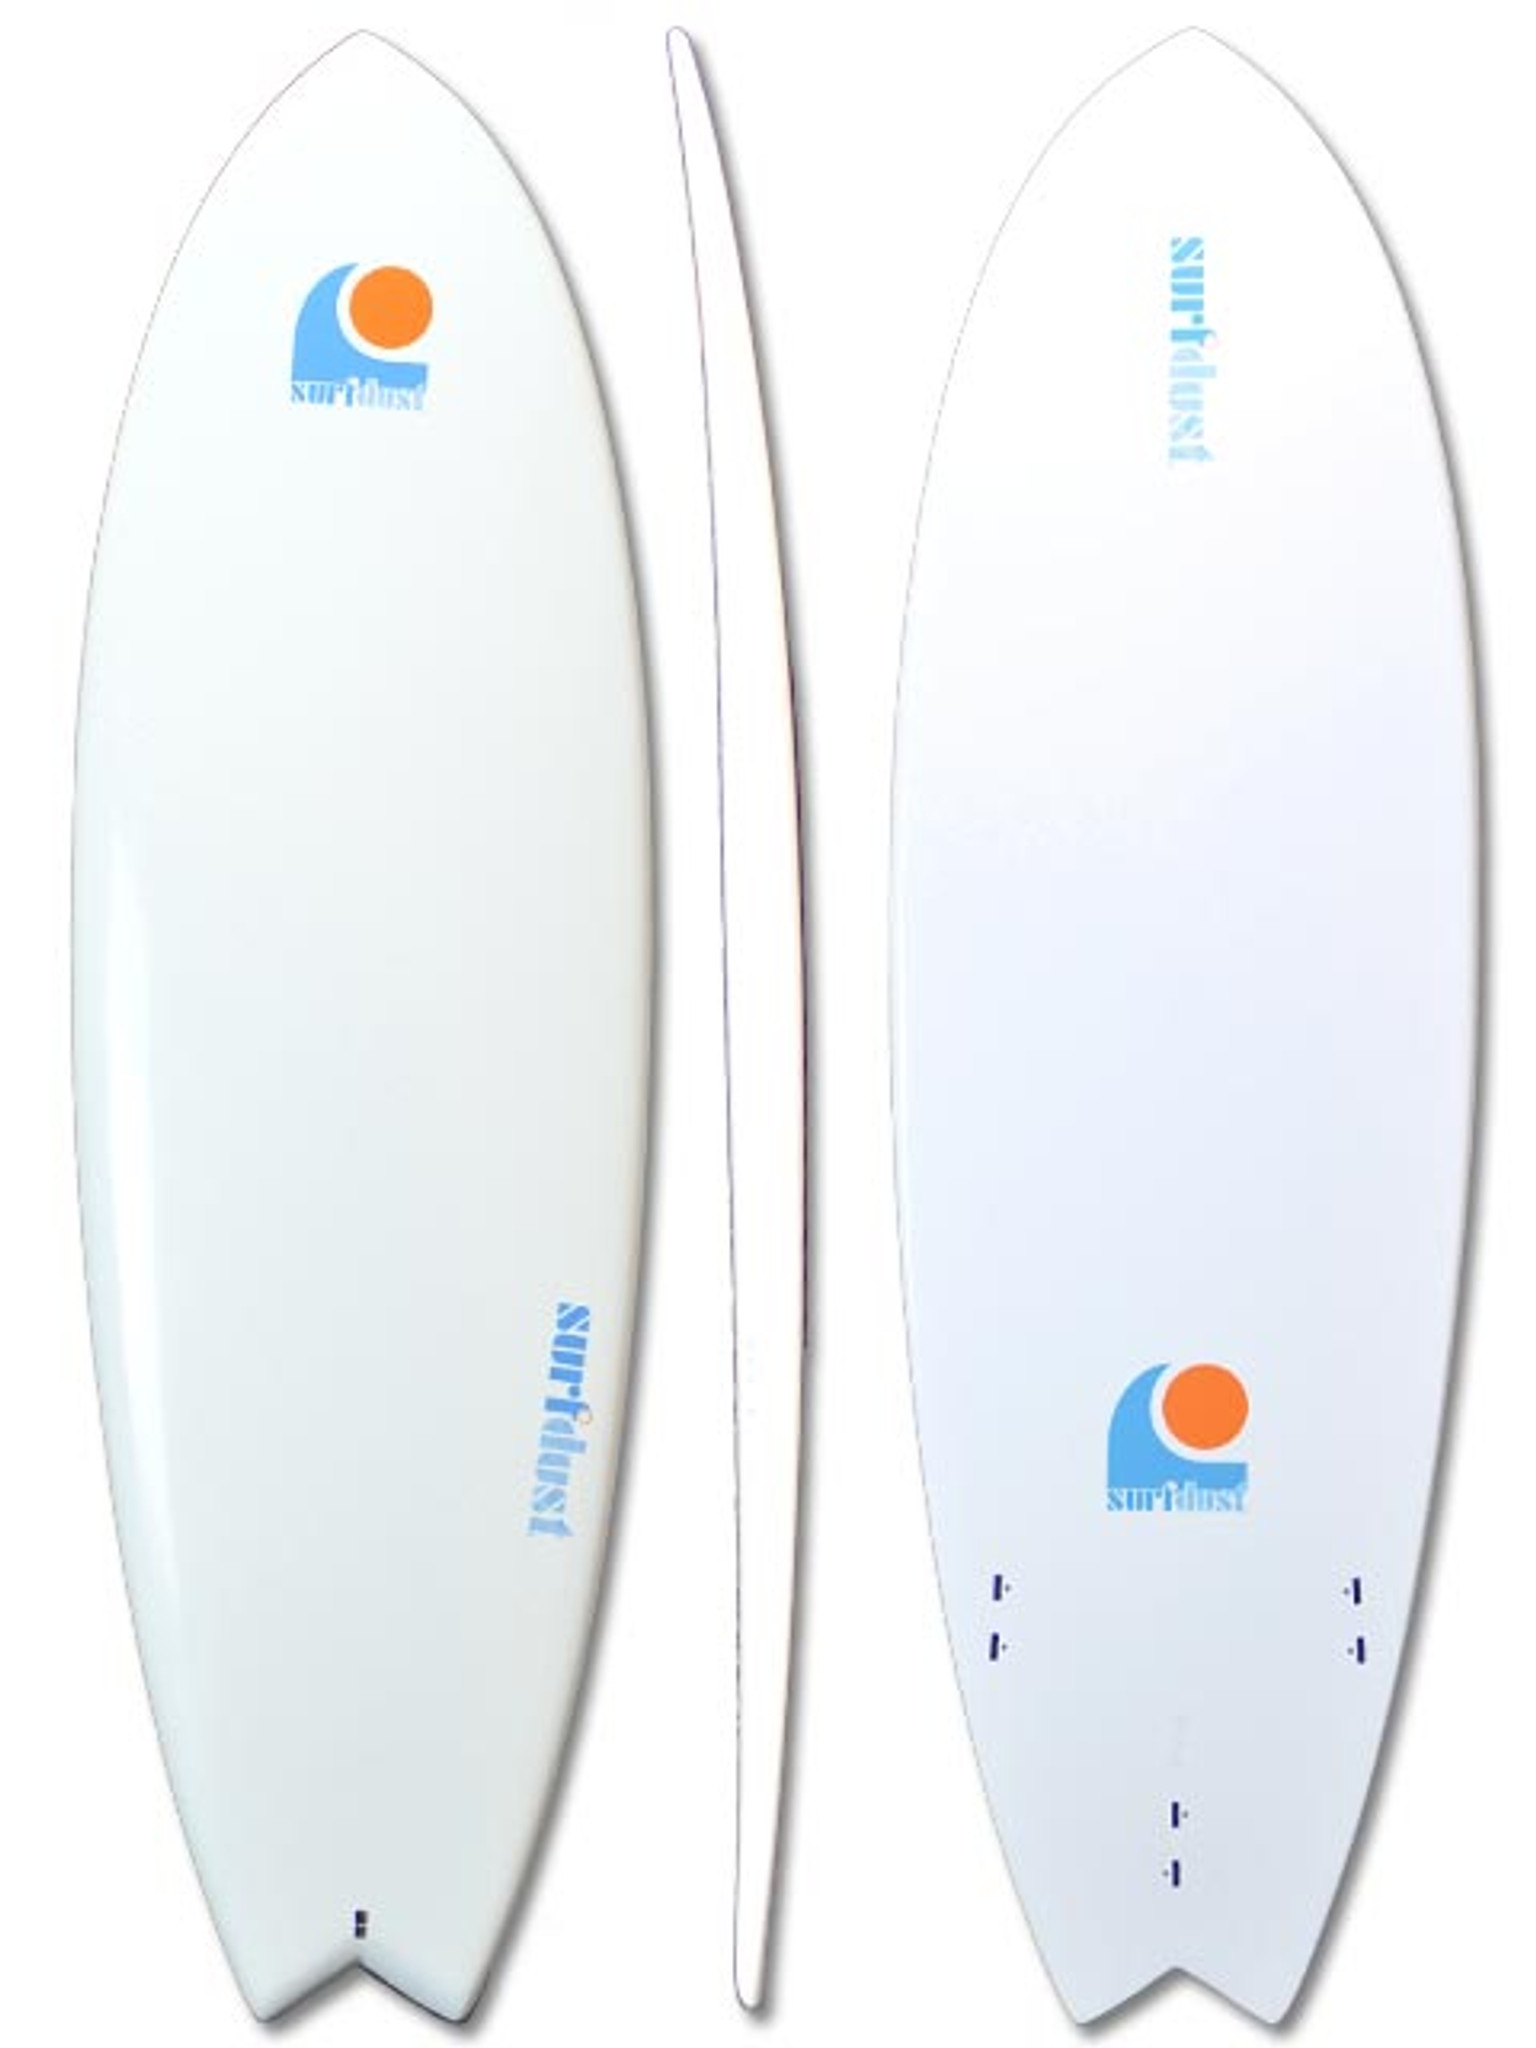 SURFDUST - 6ft Fish Tail Mini-Mal Epoxy Surfboard - Surfing